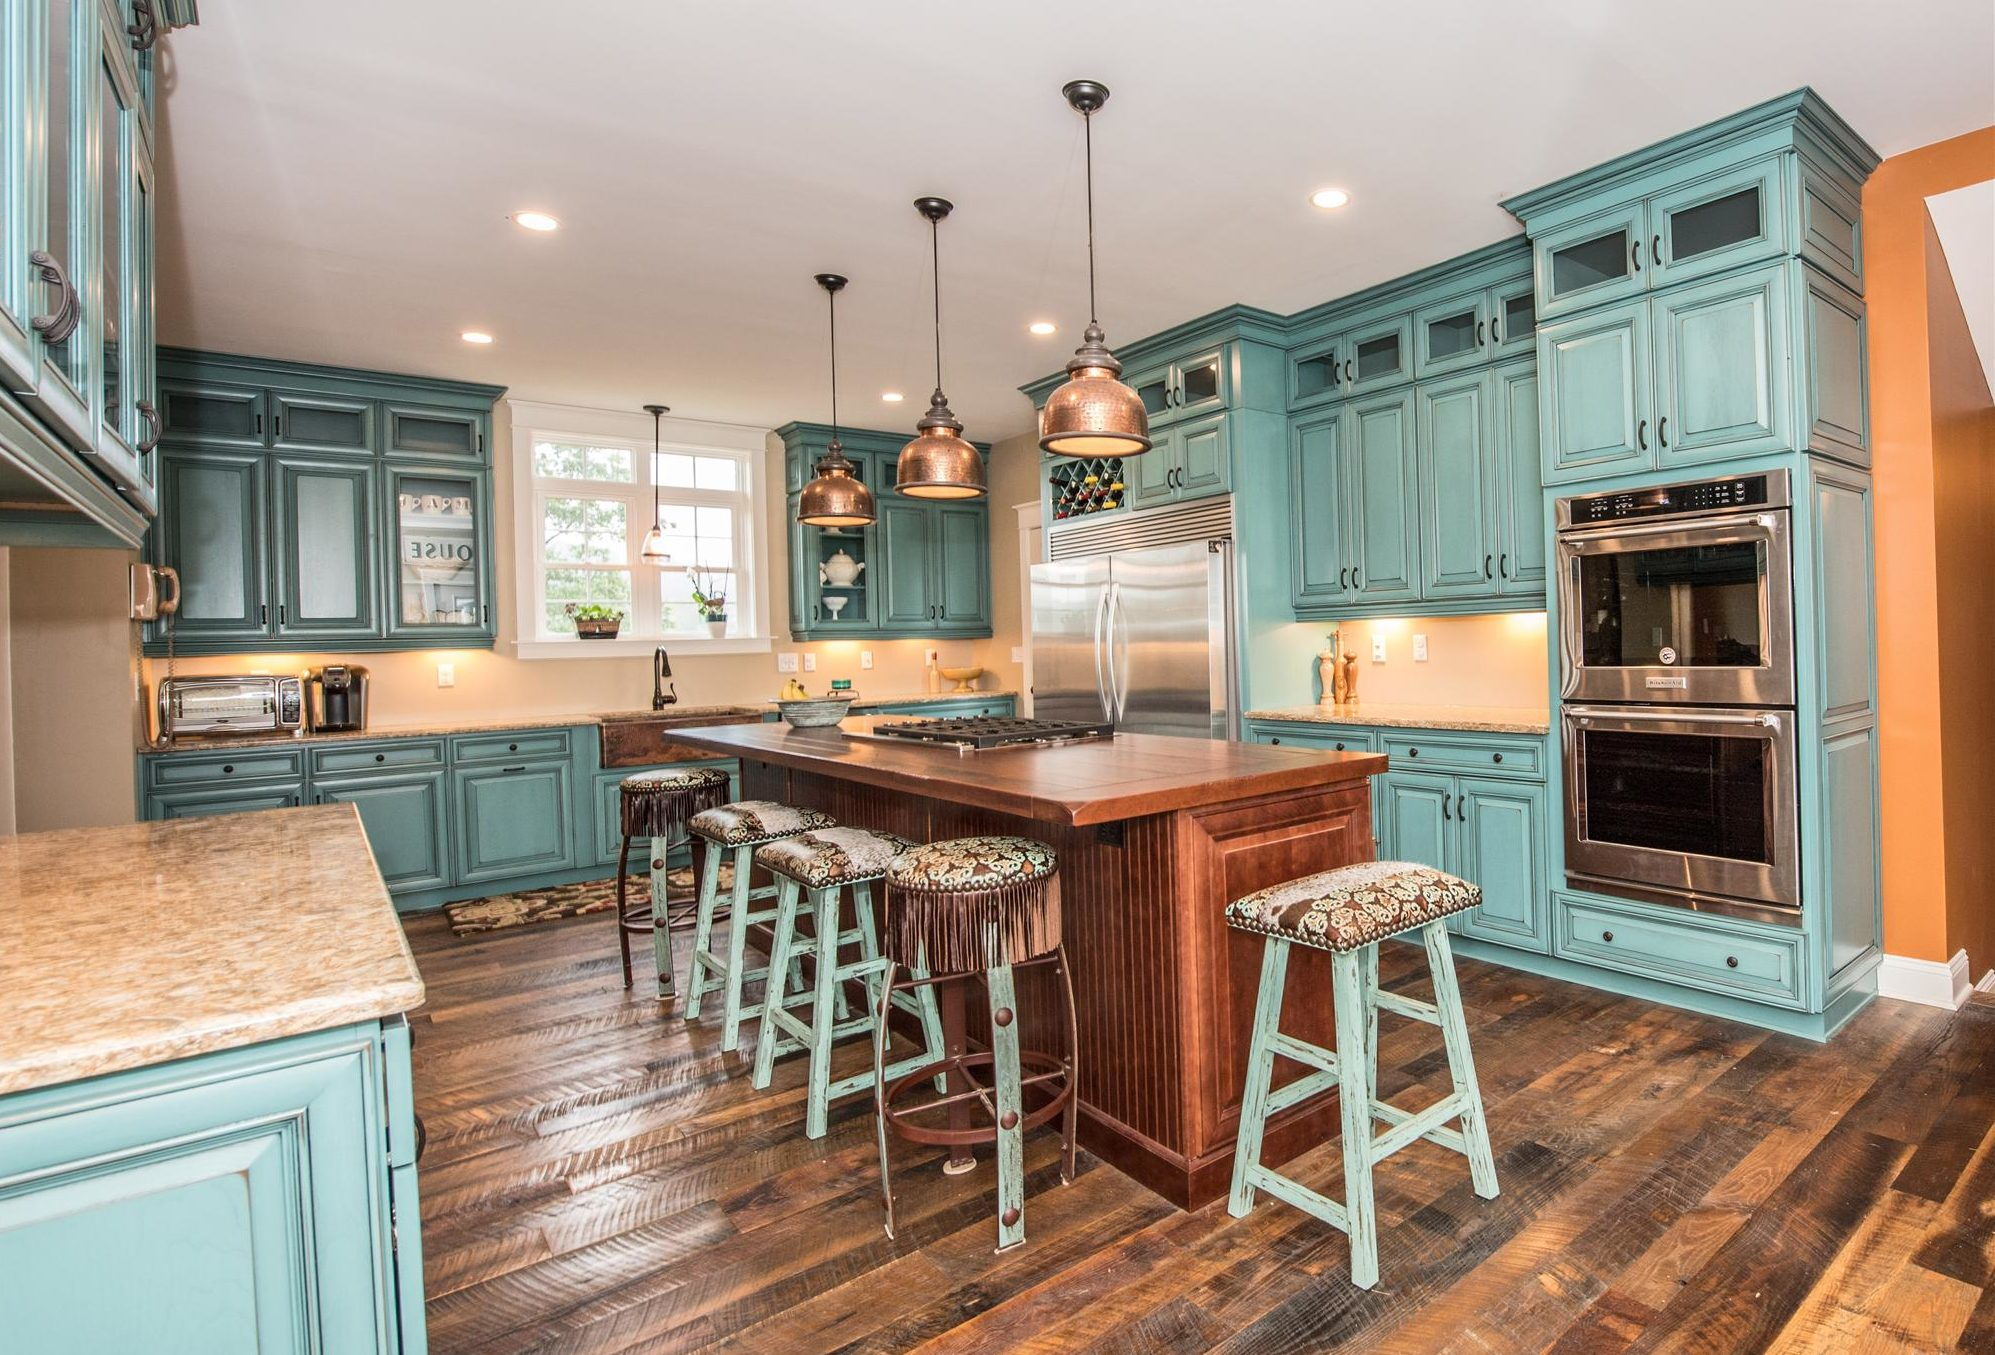 teal-colored kitchen cabinets